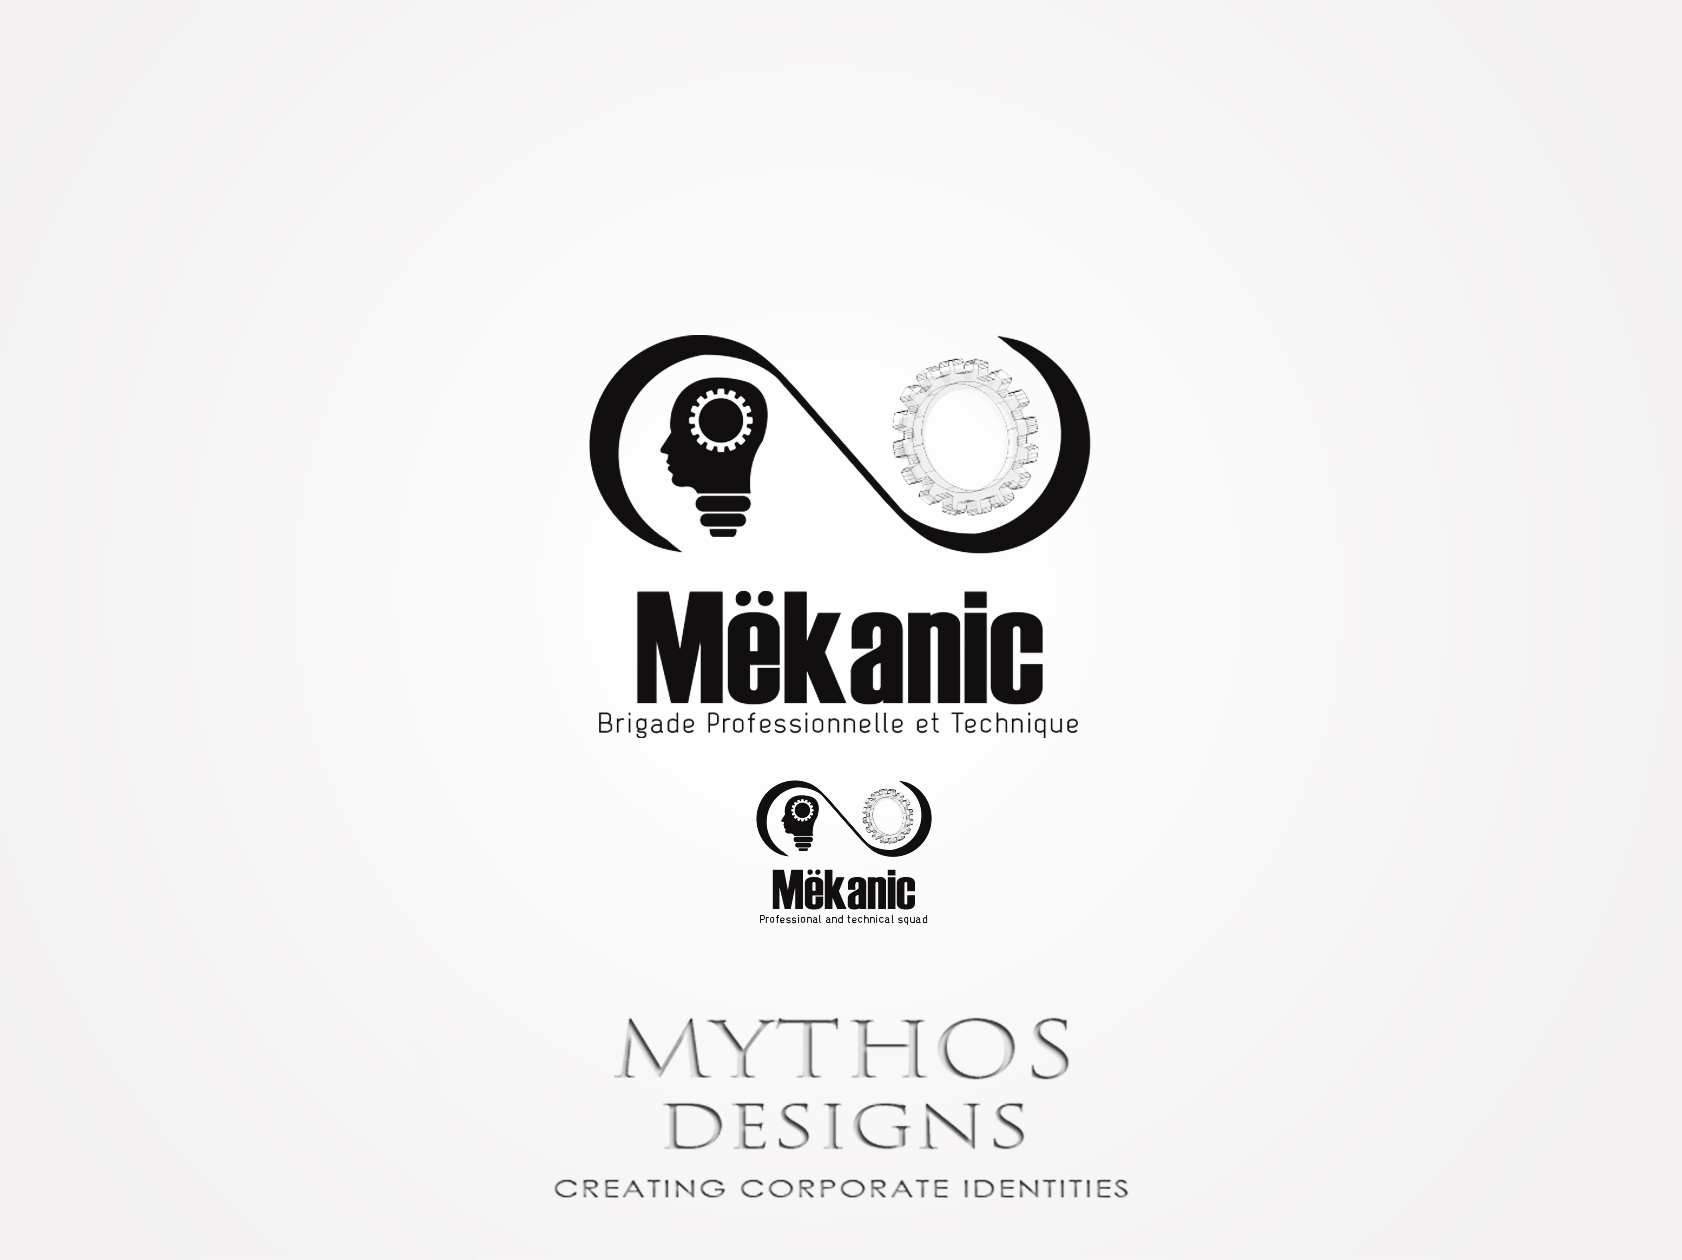 Logo Design by Mythos Designs - Entry No. 163 in the Logo Design Contest Creative Logo Design for MËKANIC - Professional and technical squad.